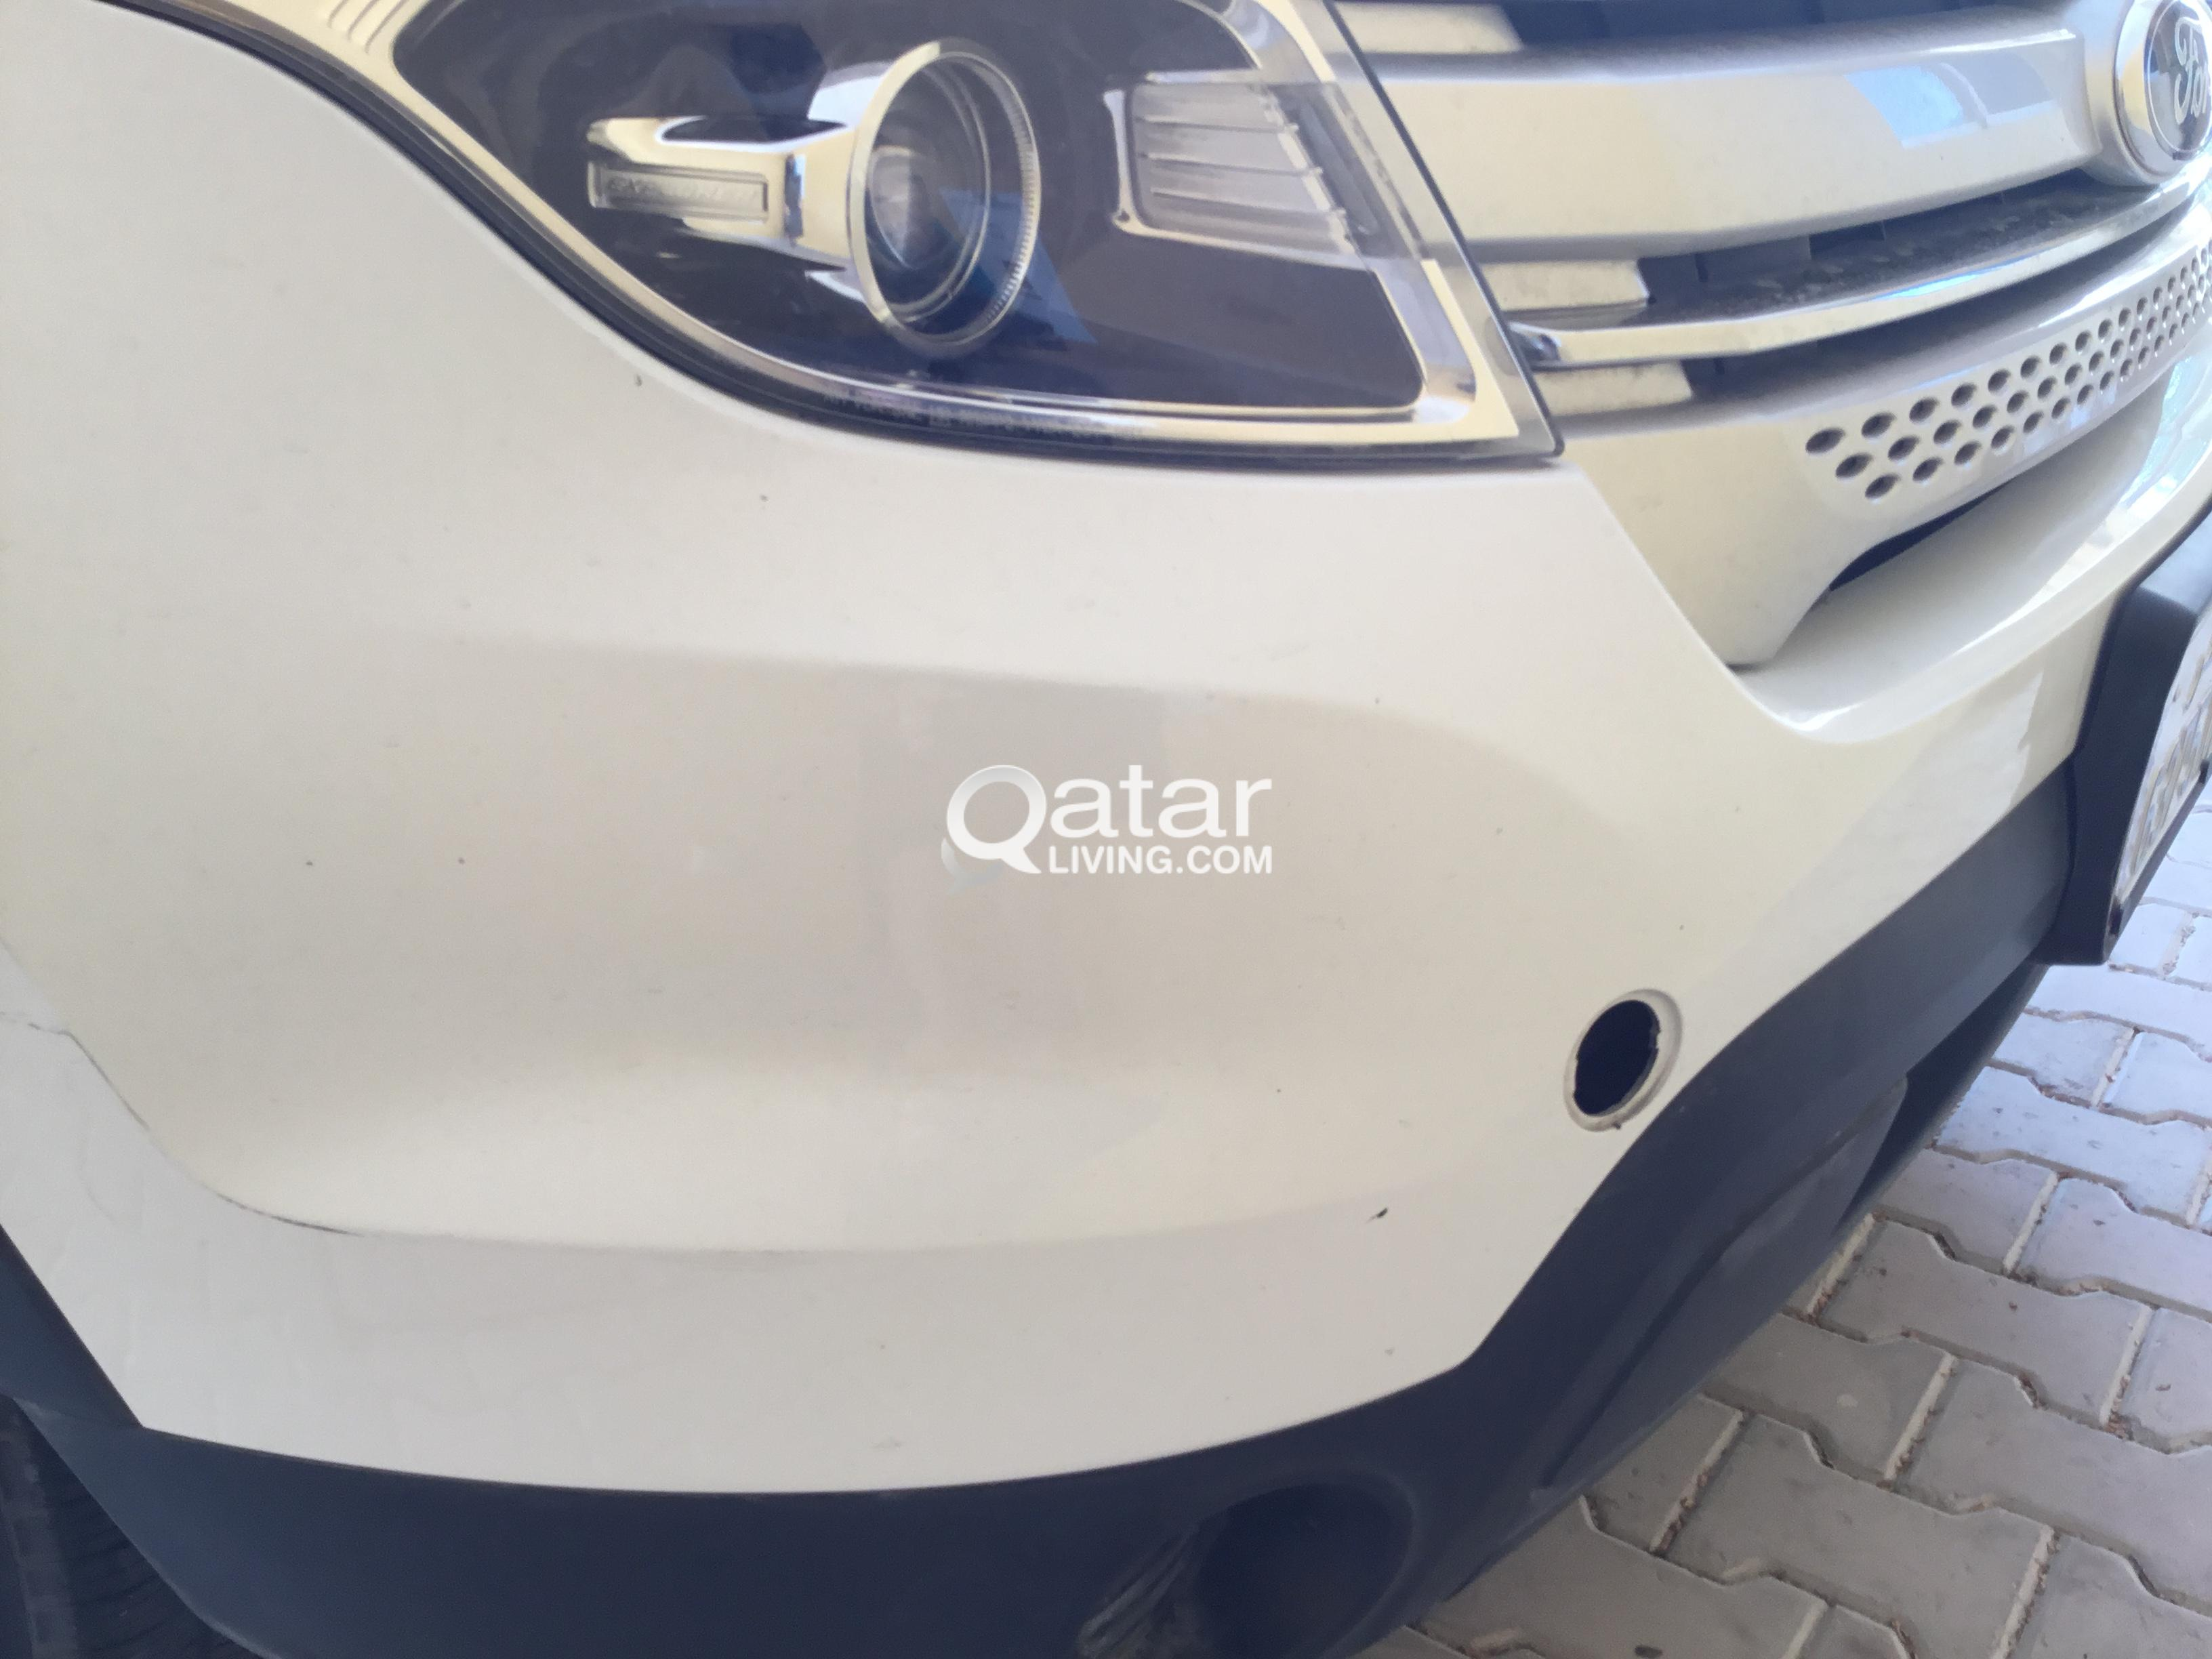 2015 Ford Explorer Tow Hitch Ca Qatar Living